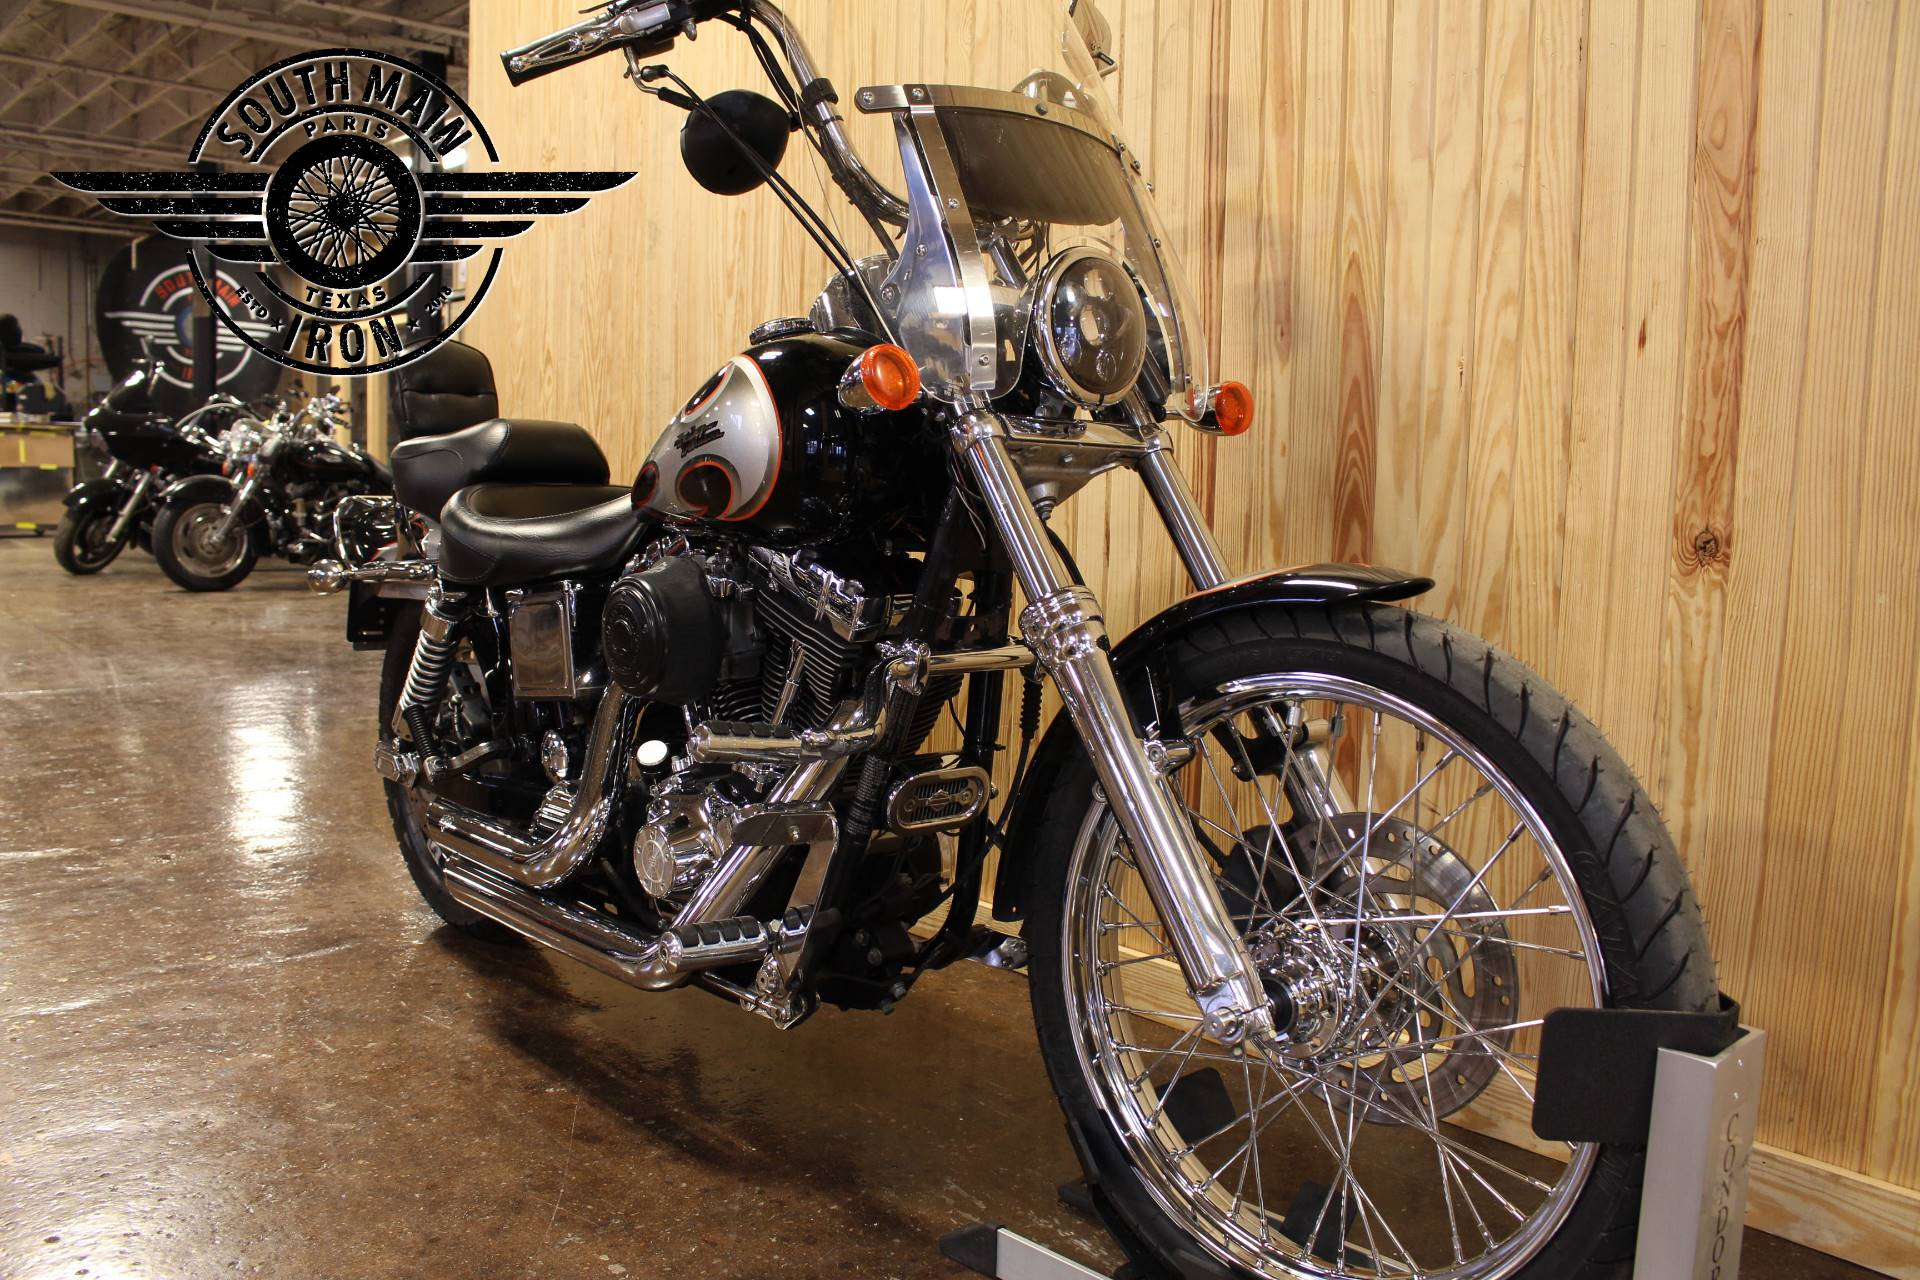 2002 Harley-Davidson FXDWG Dyna Wide Glide® in Paris, Texas - Photo 4